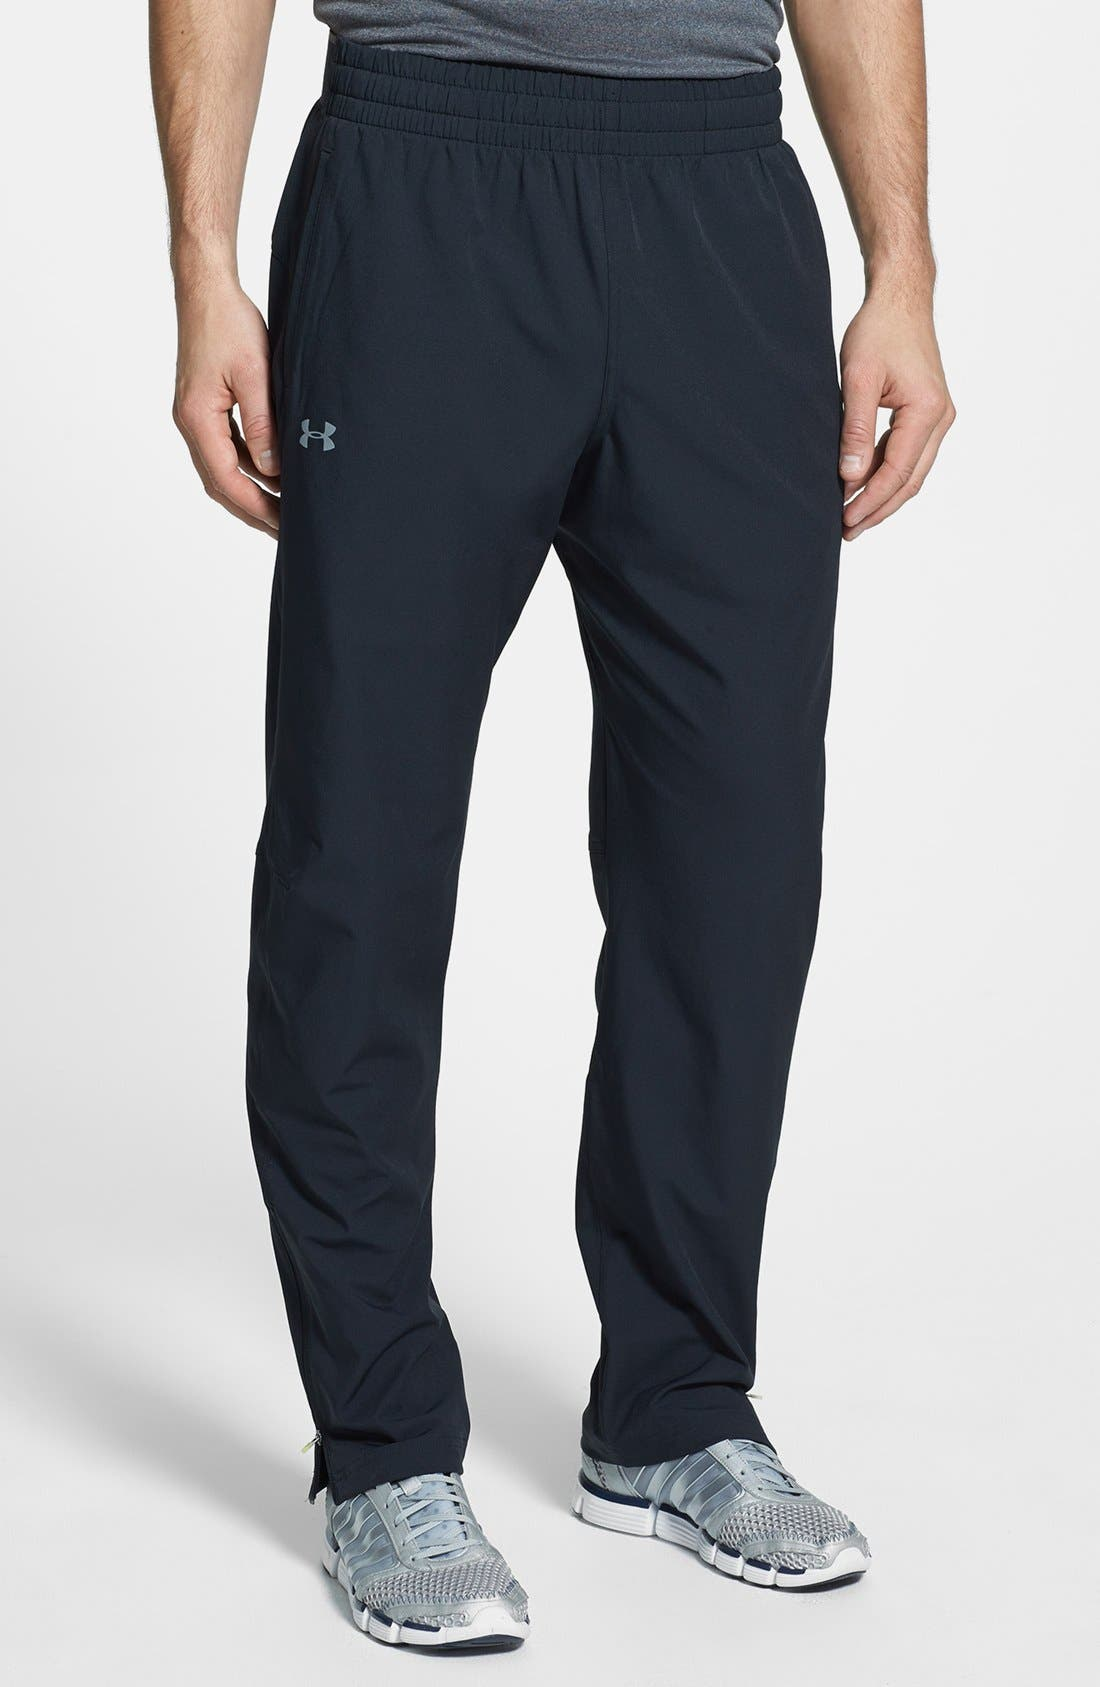 Main Image - Under Armour X-ALT Woven Tapered Pants